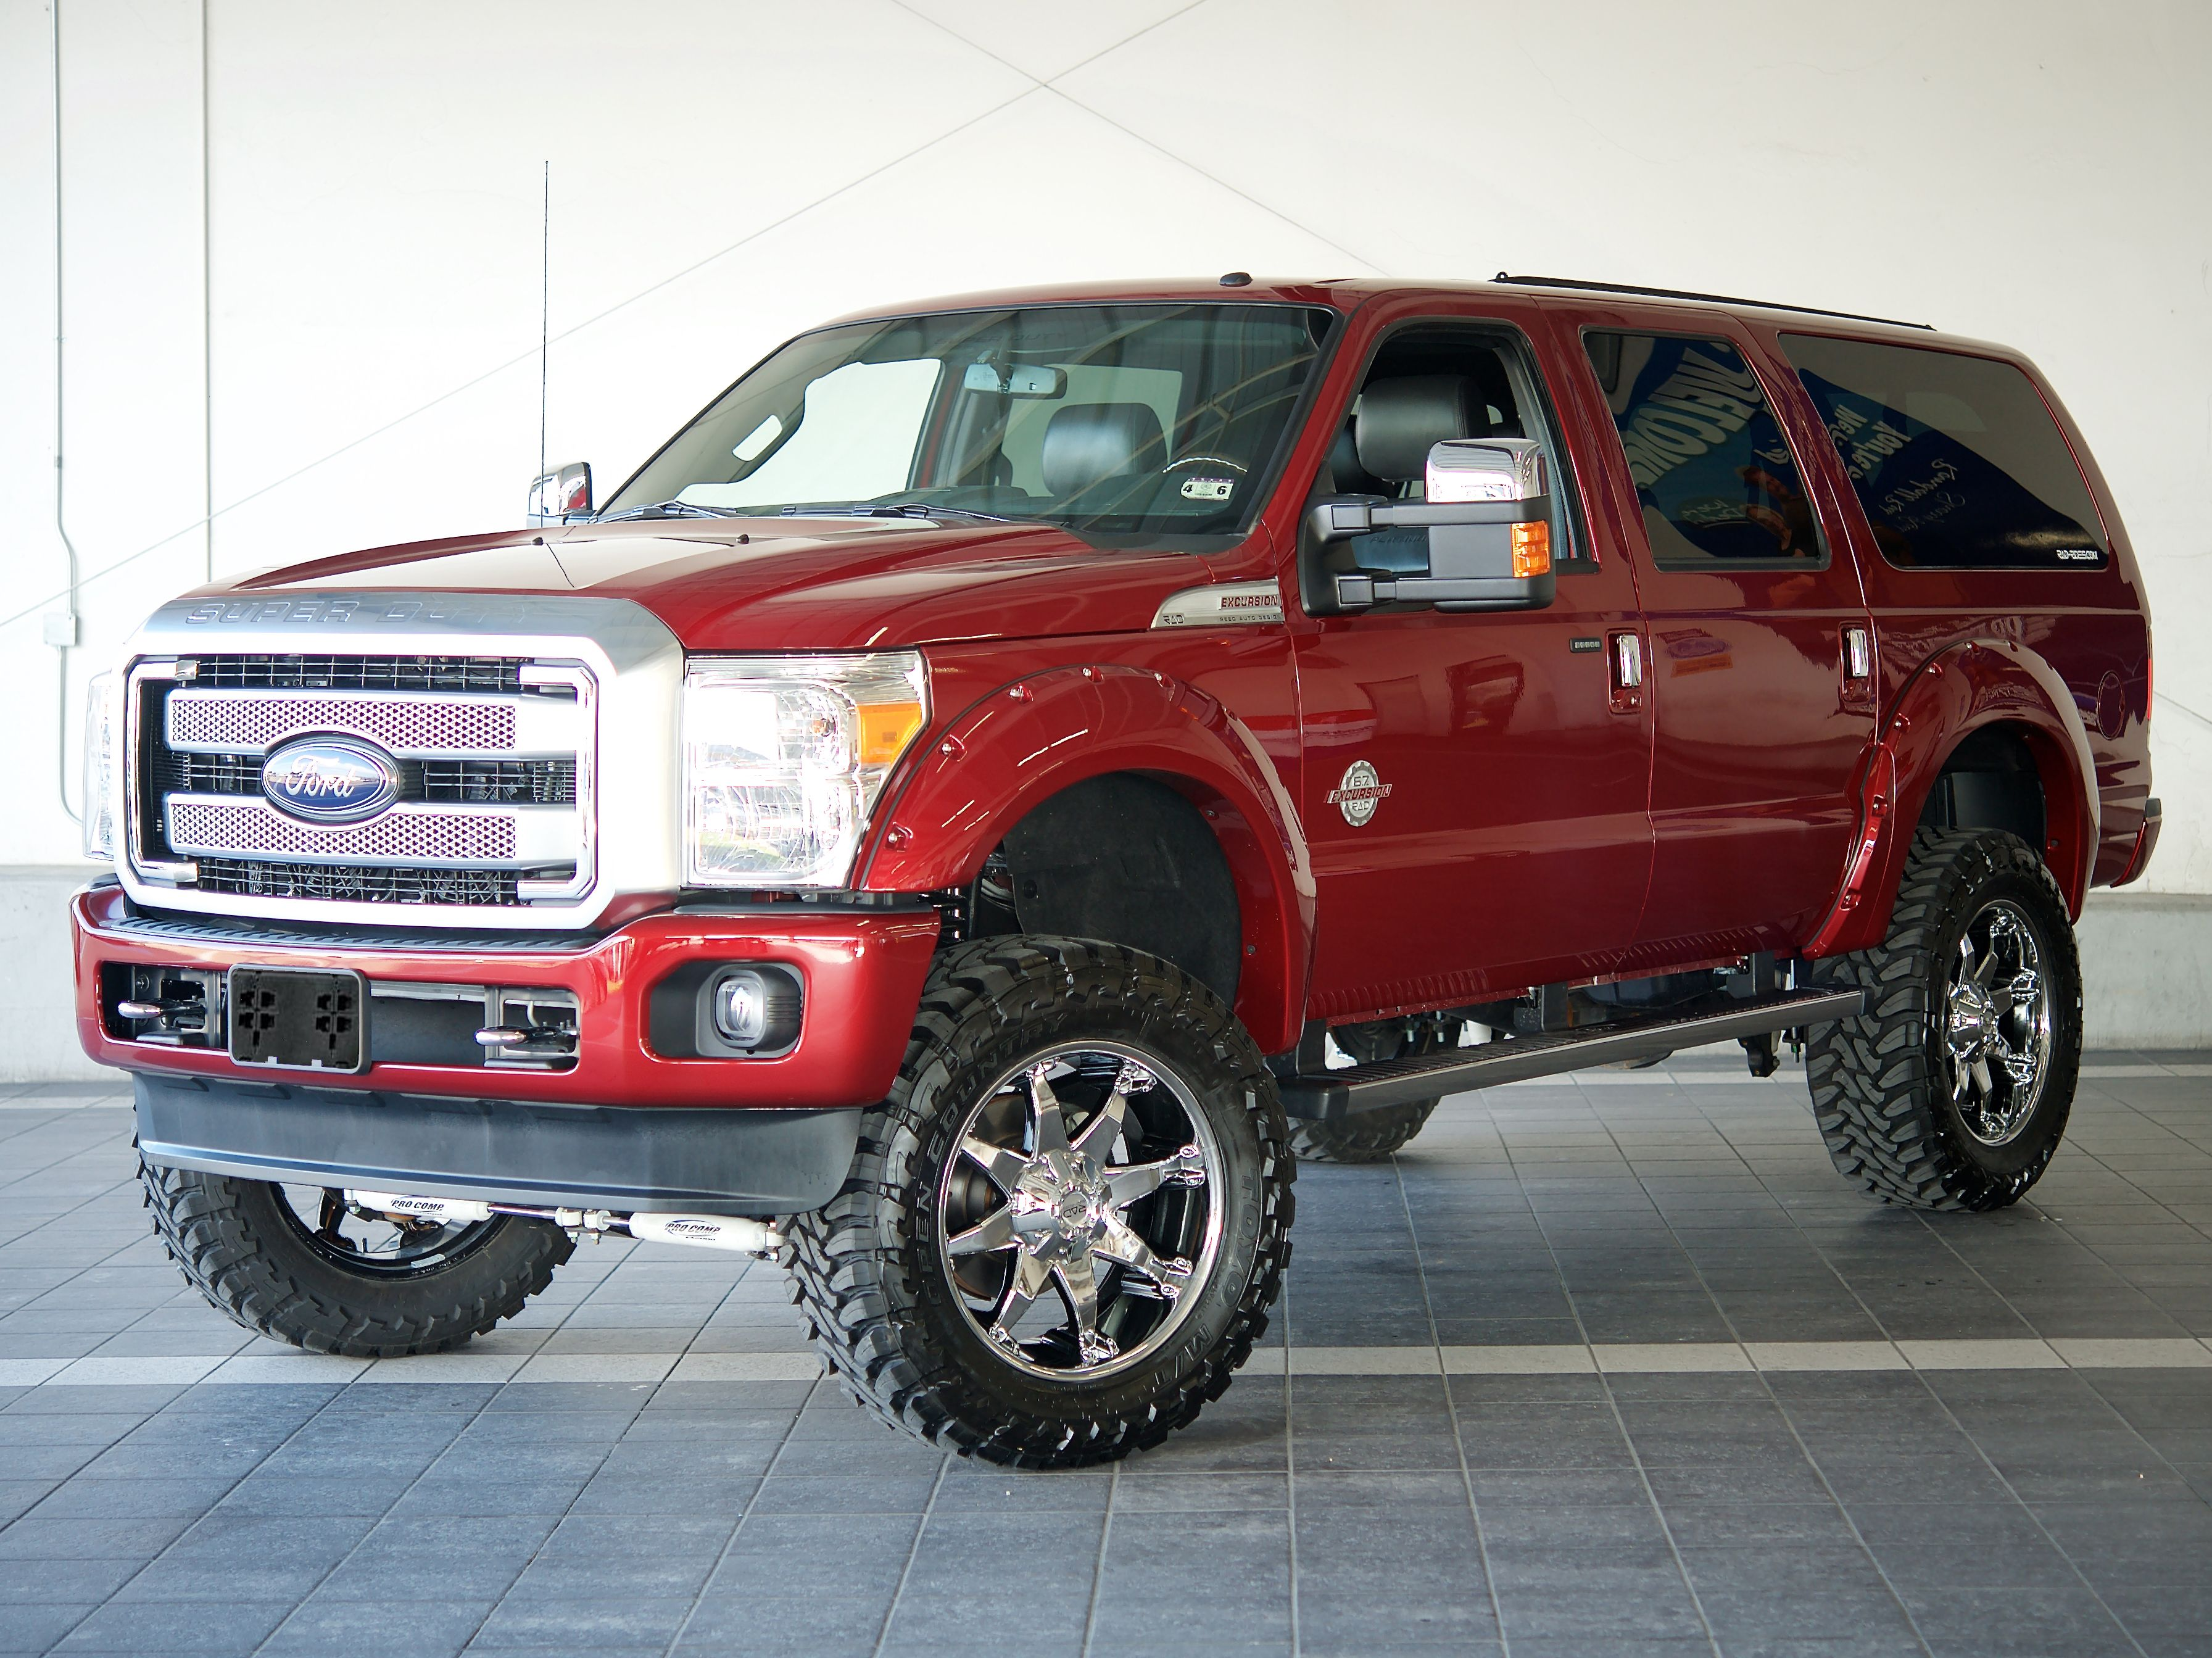 Ford Excursion Cars Pinterest Ford Excursion Ford And Ford